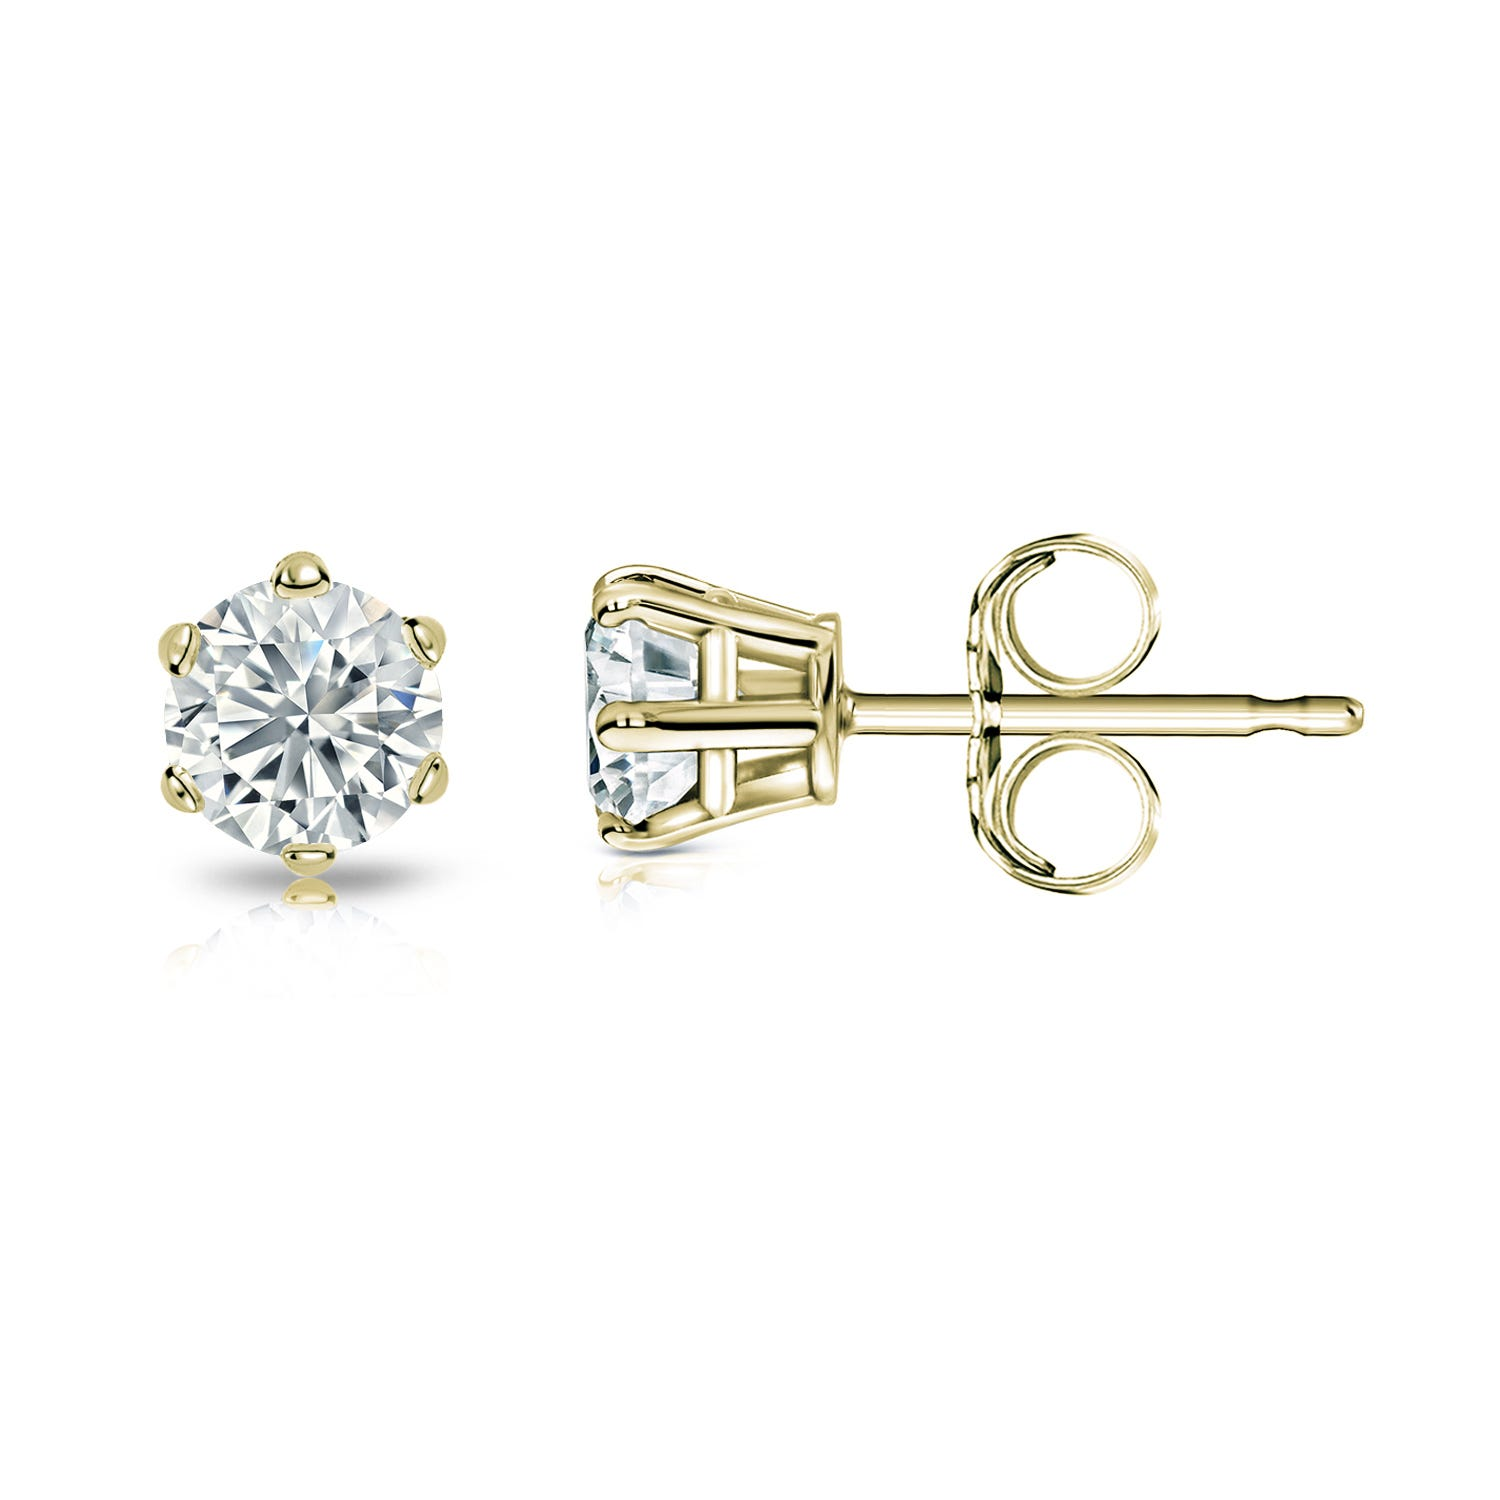 Round Diamond 1/3ctw. (IJ-I2) Solitaire Stud 6-Prong Earrings in 14K Yellow Gold